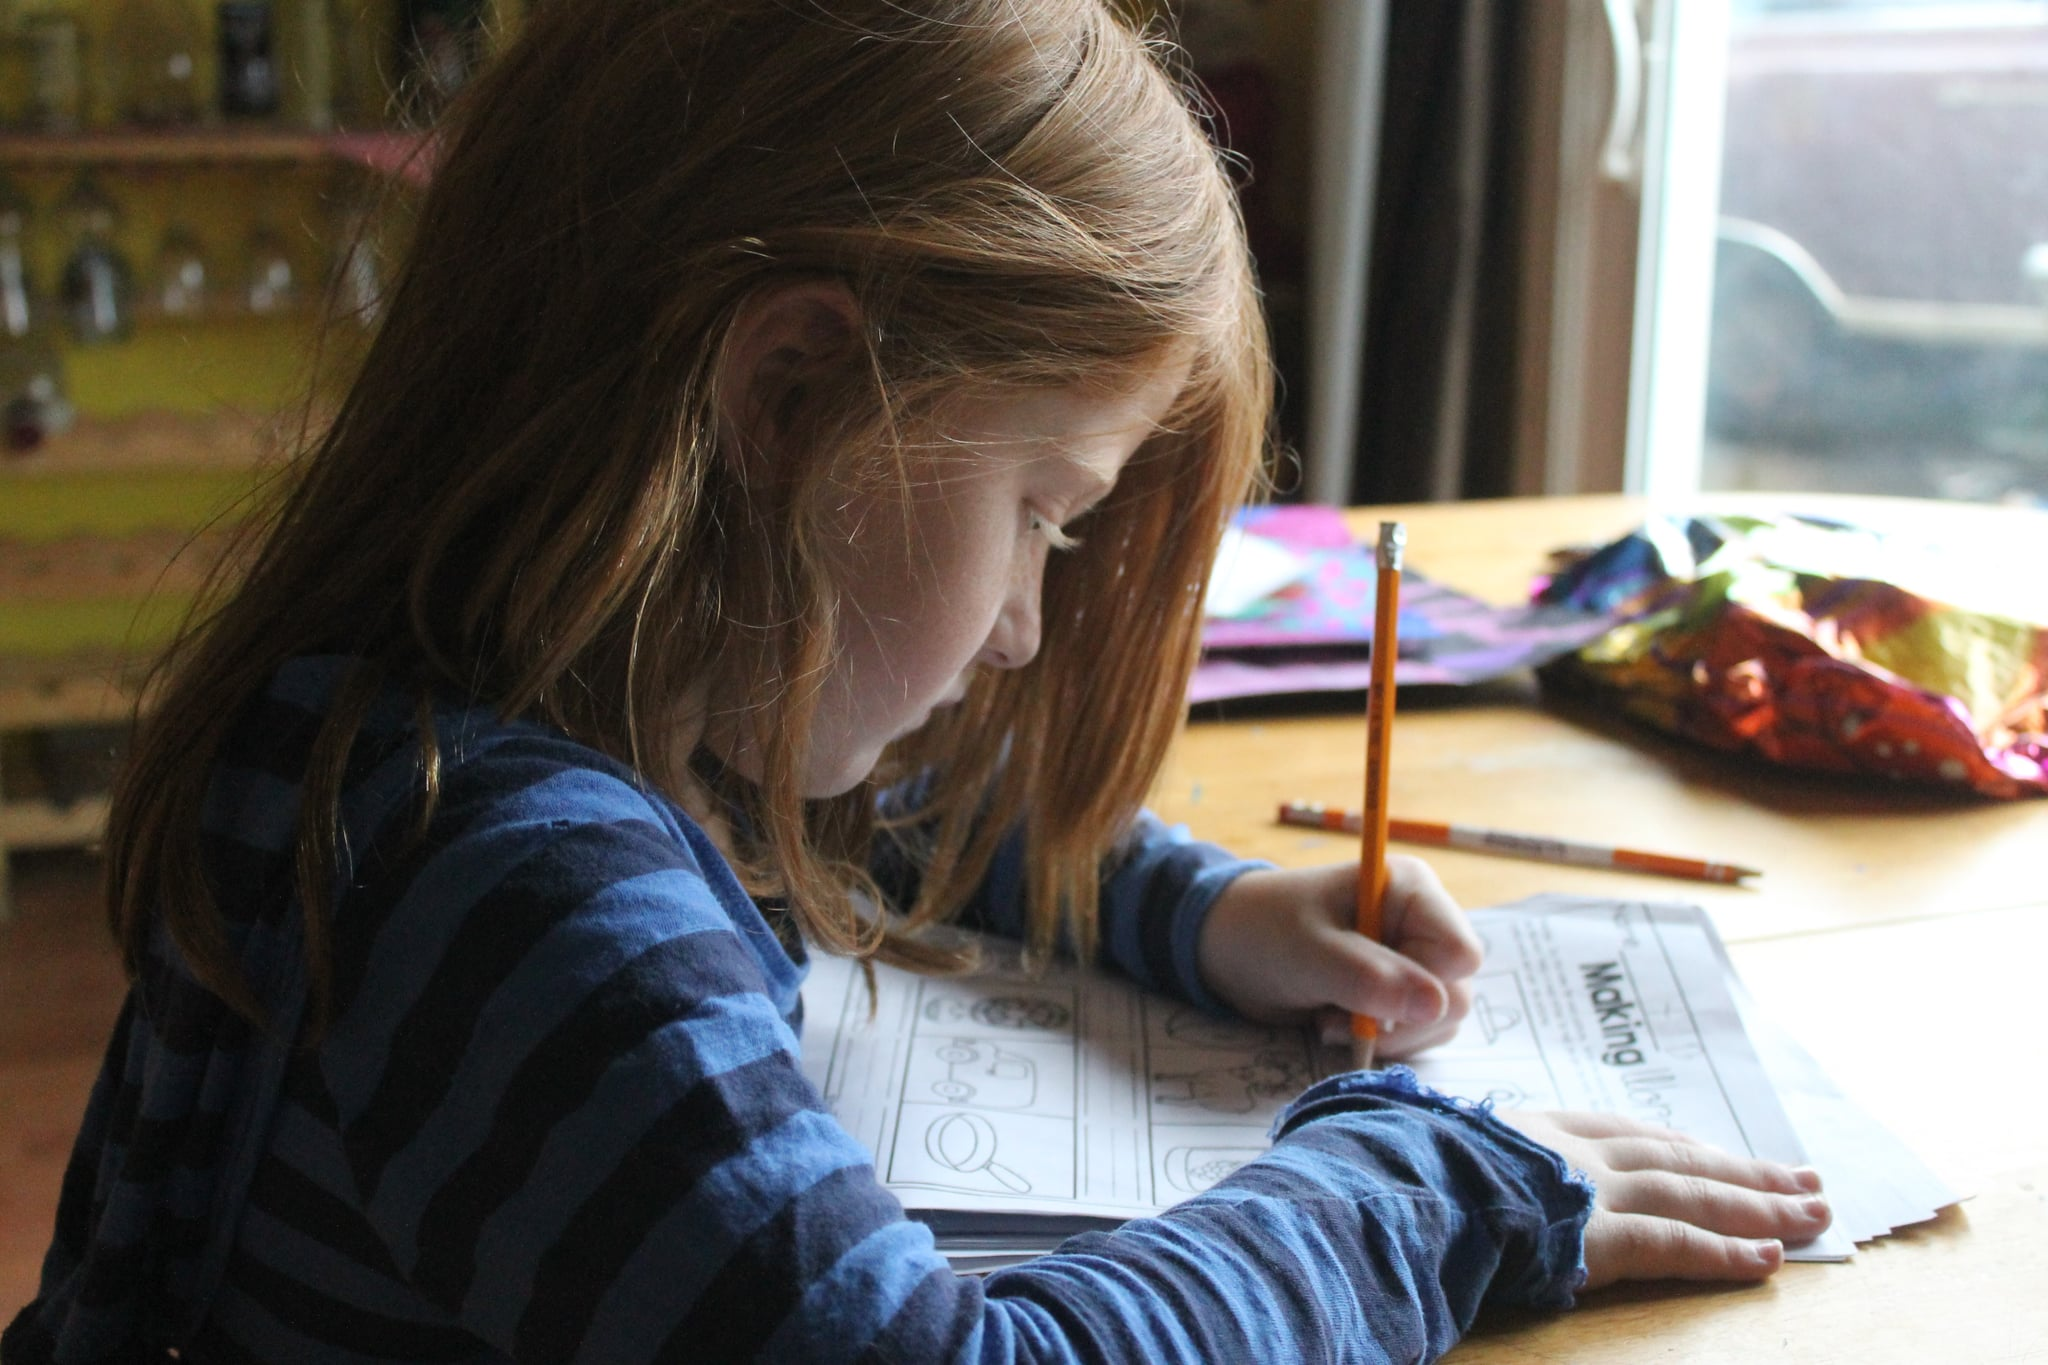 tmp_L4ZJ8k_c523a1f1f8908421_child-girl-homework-1001675.jpg